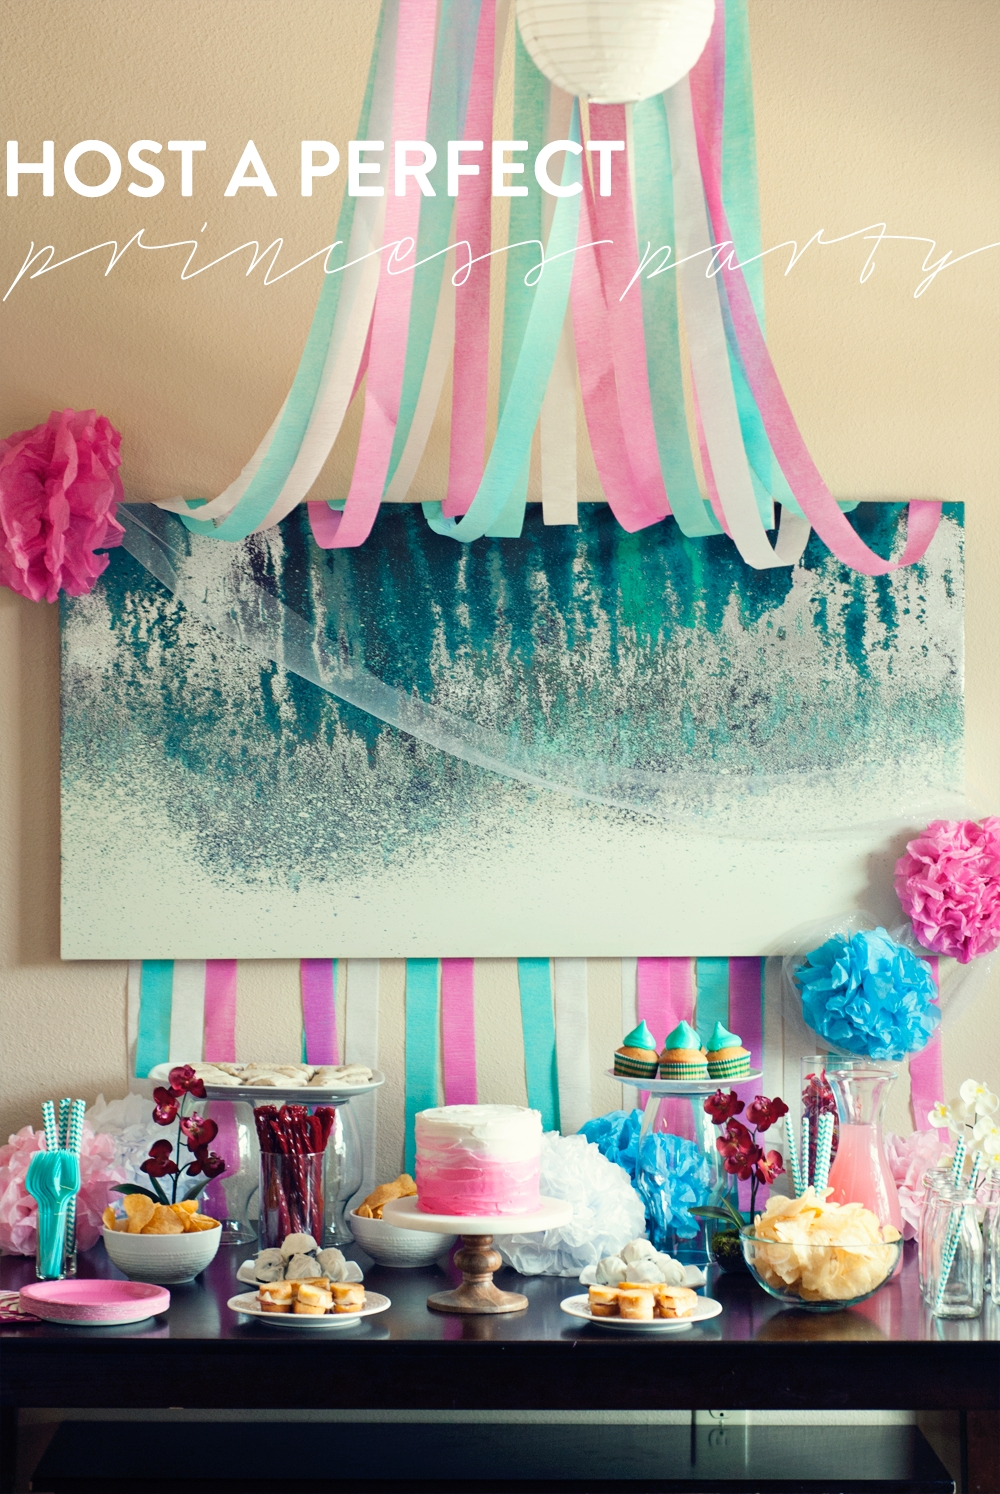 10 Elegant Princess And Prince Party Ideas host a perfect princess slumber party a simple pantry 2 2020